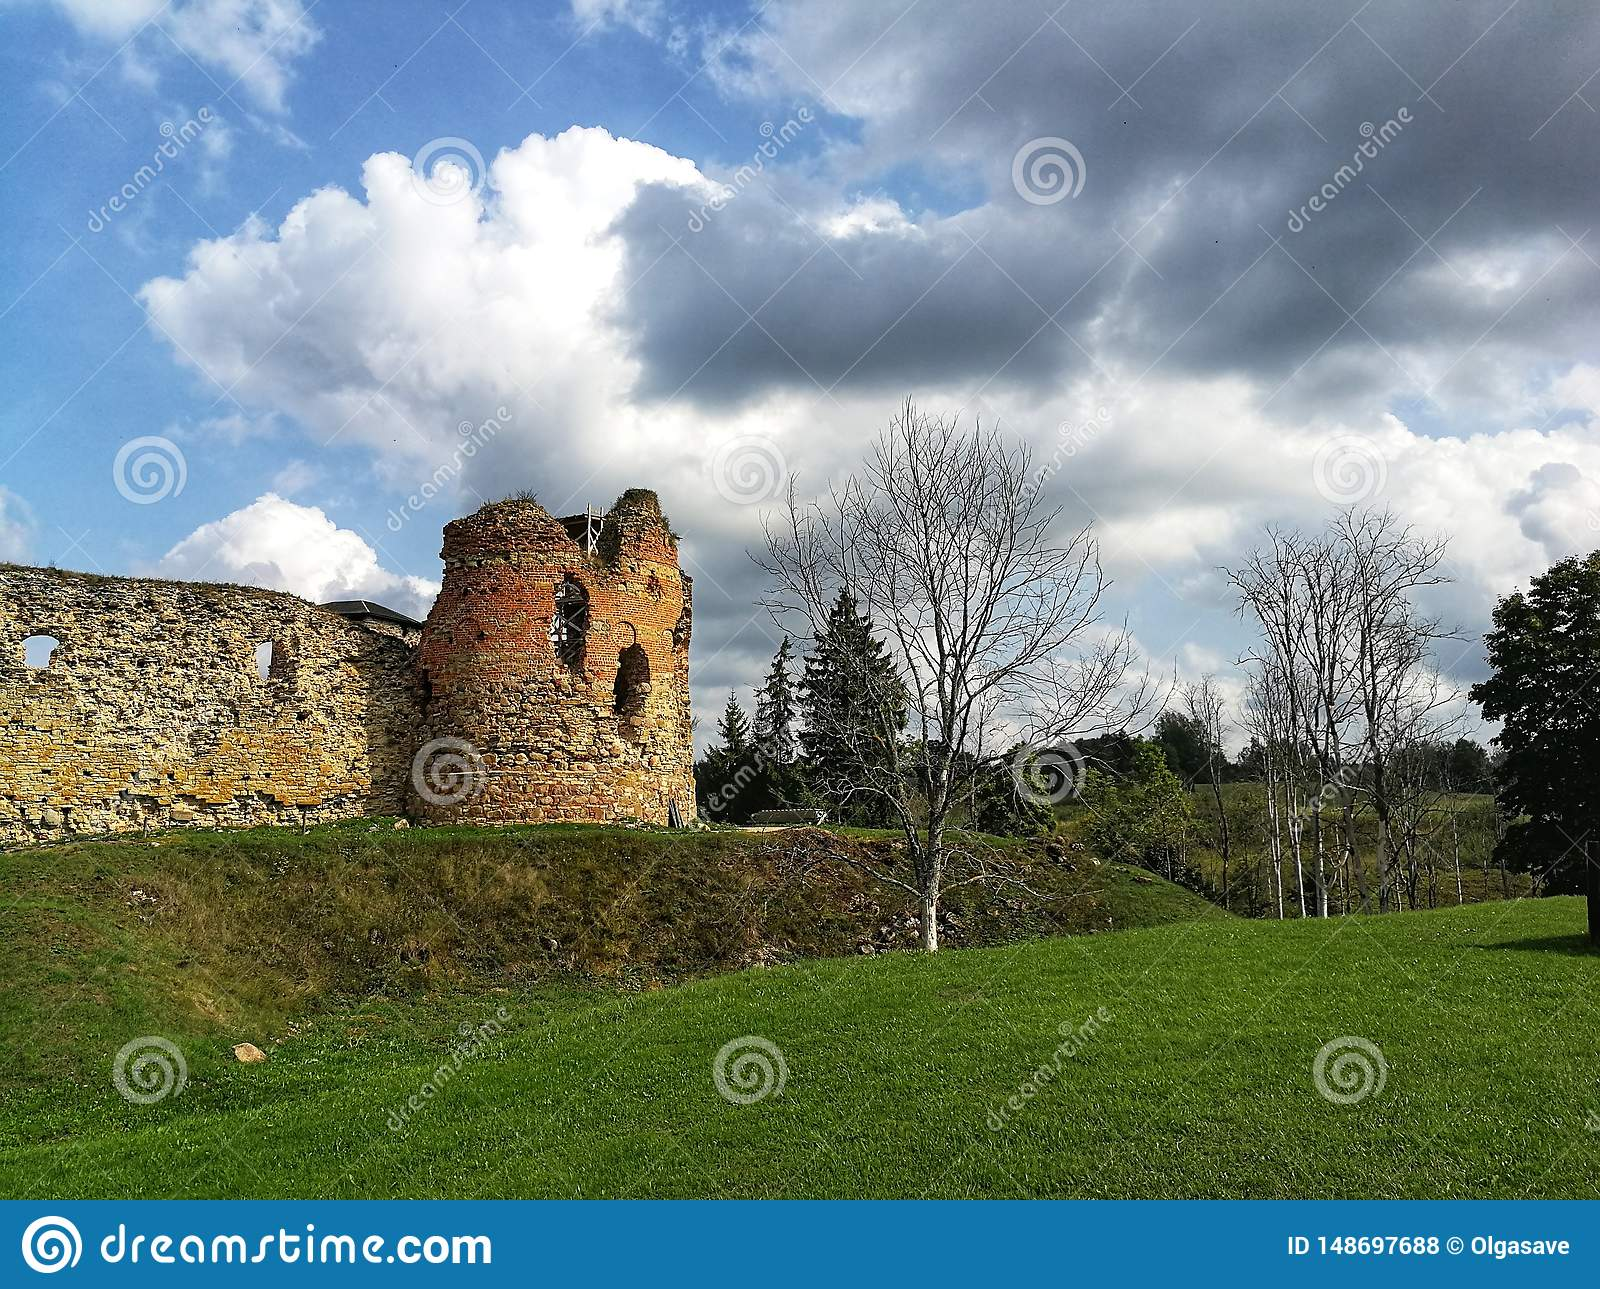 Picturesque Vastseliina castle ruins in sunny day. Historic and tourist place in Vorumaa, Estonia